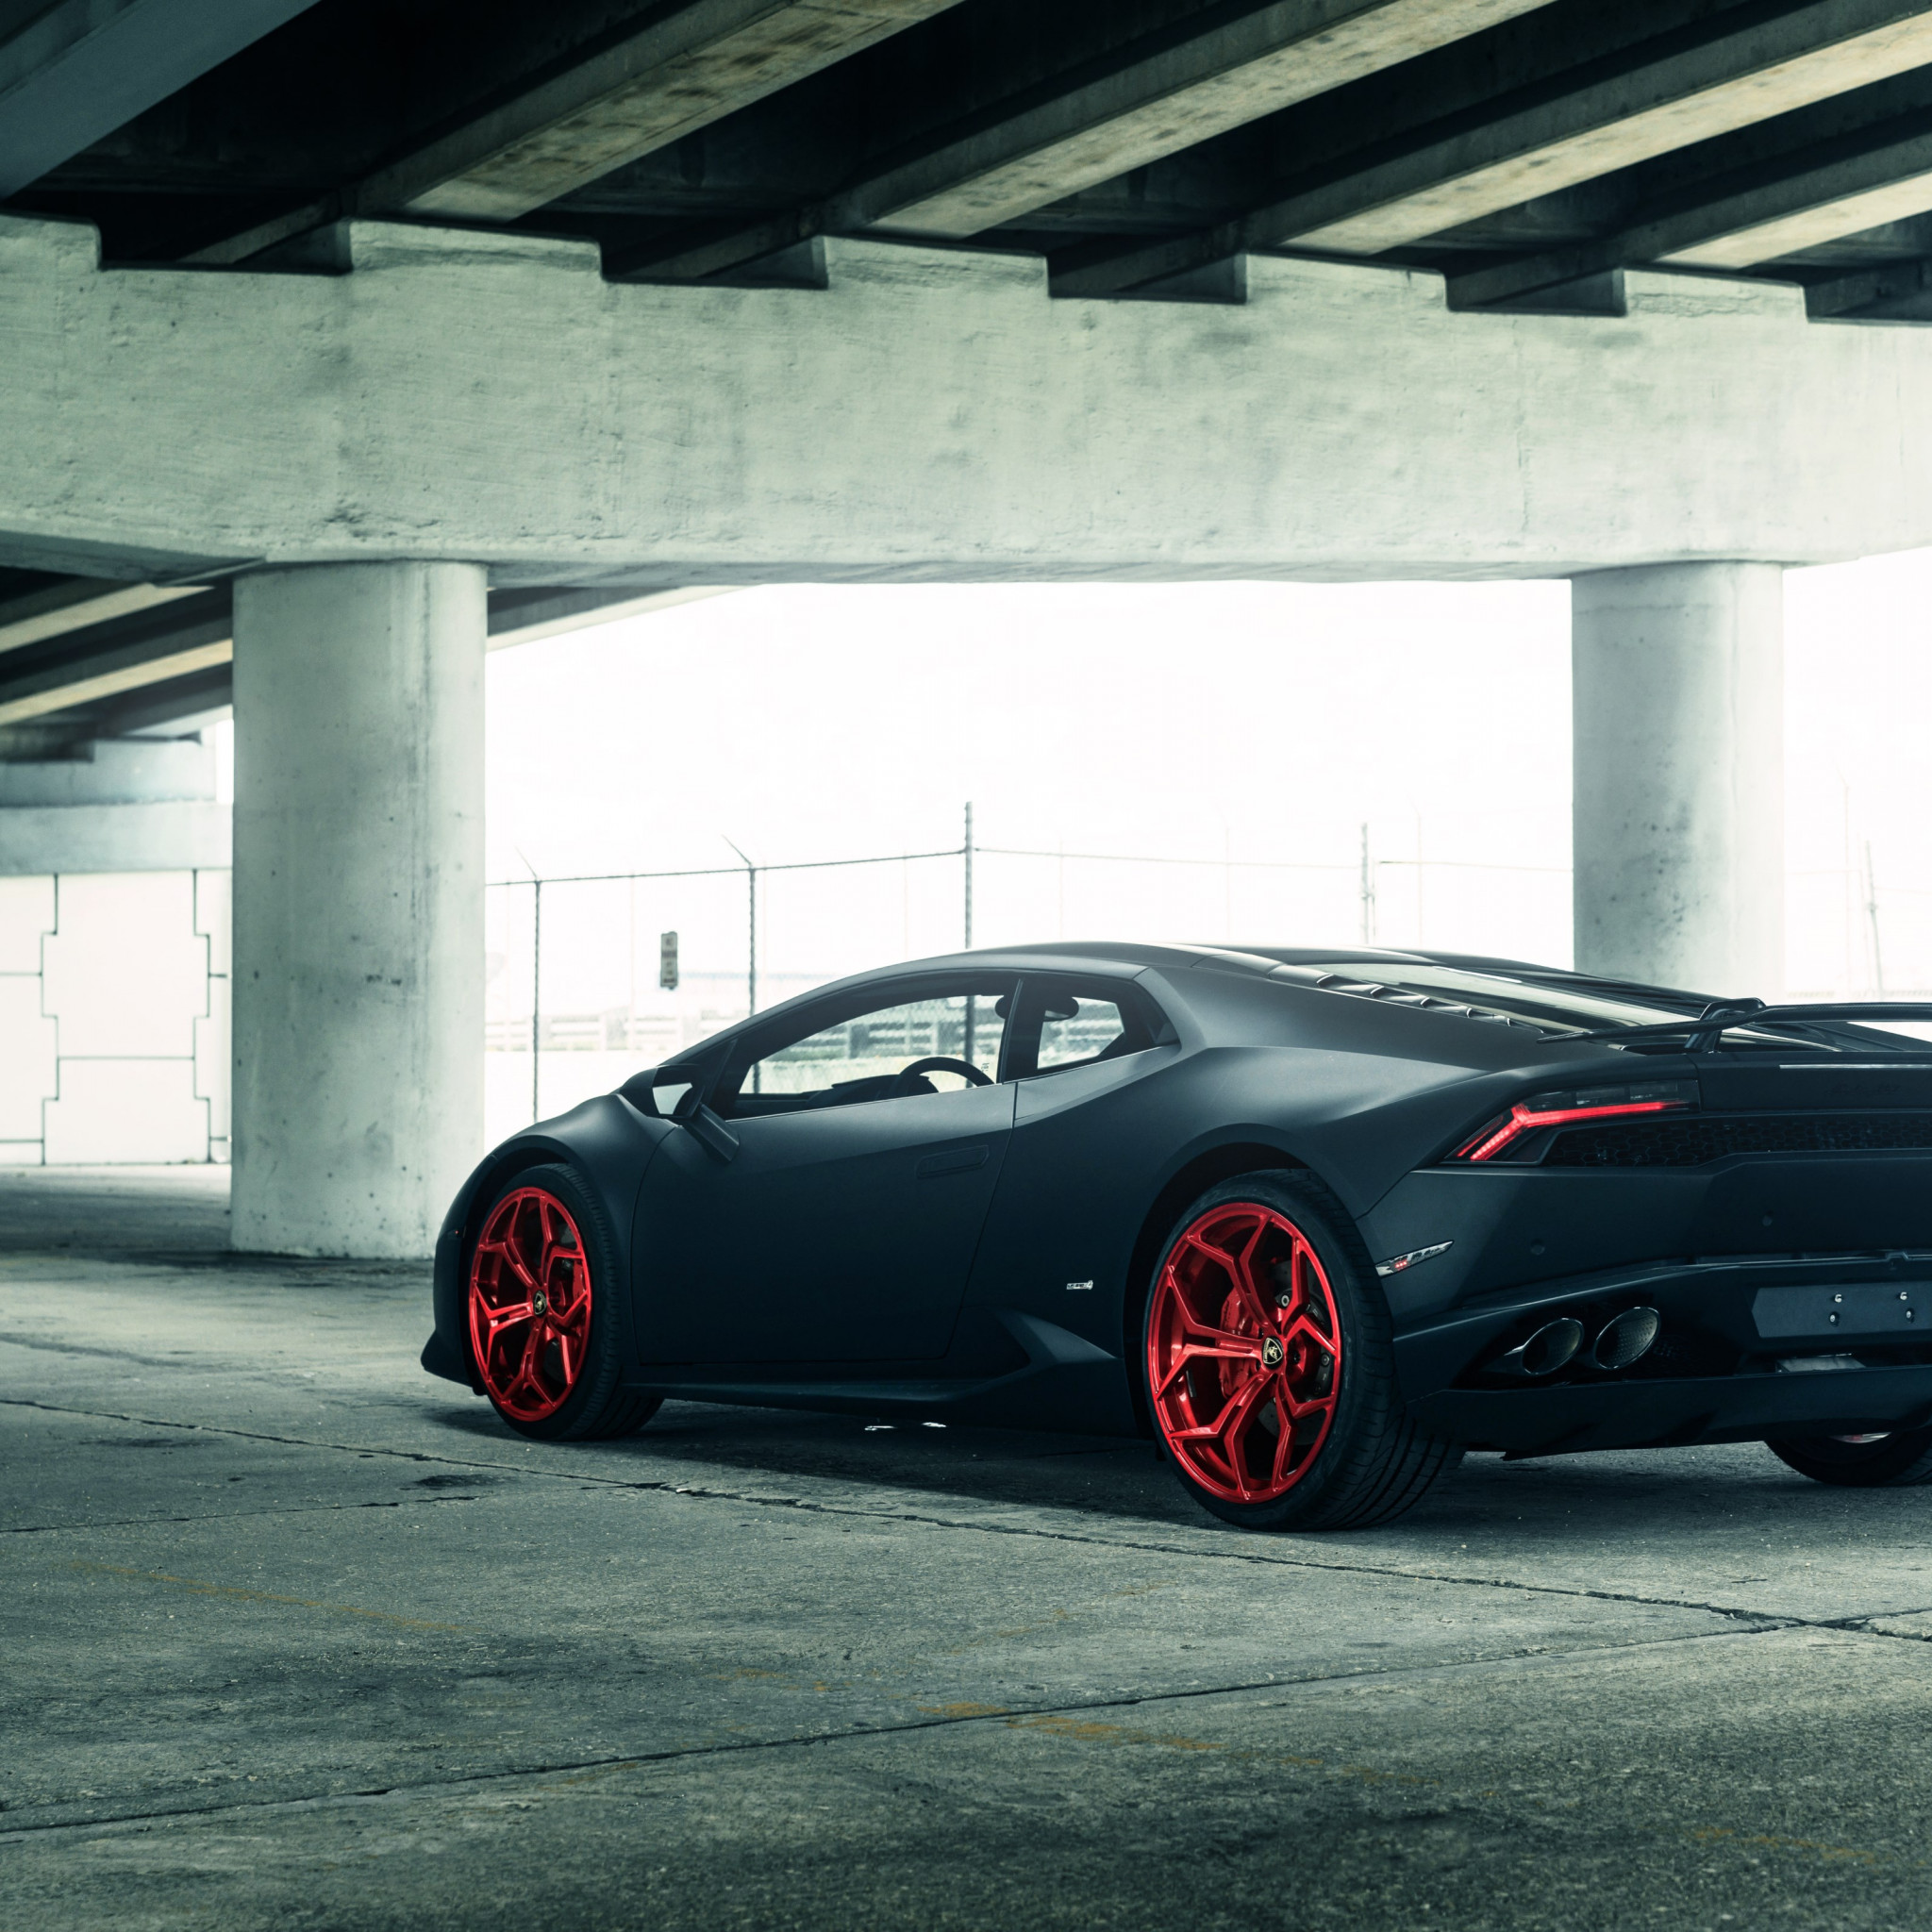 Vellano Matte Black Lamborghini Huracan on Red 3 wallpaper 2048x2048